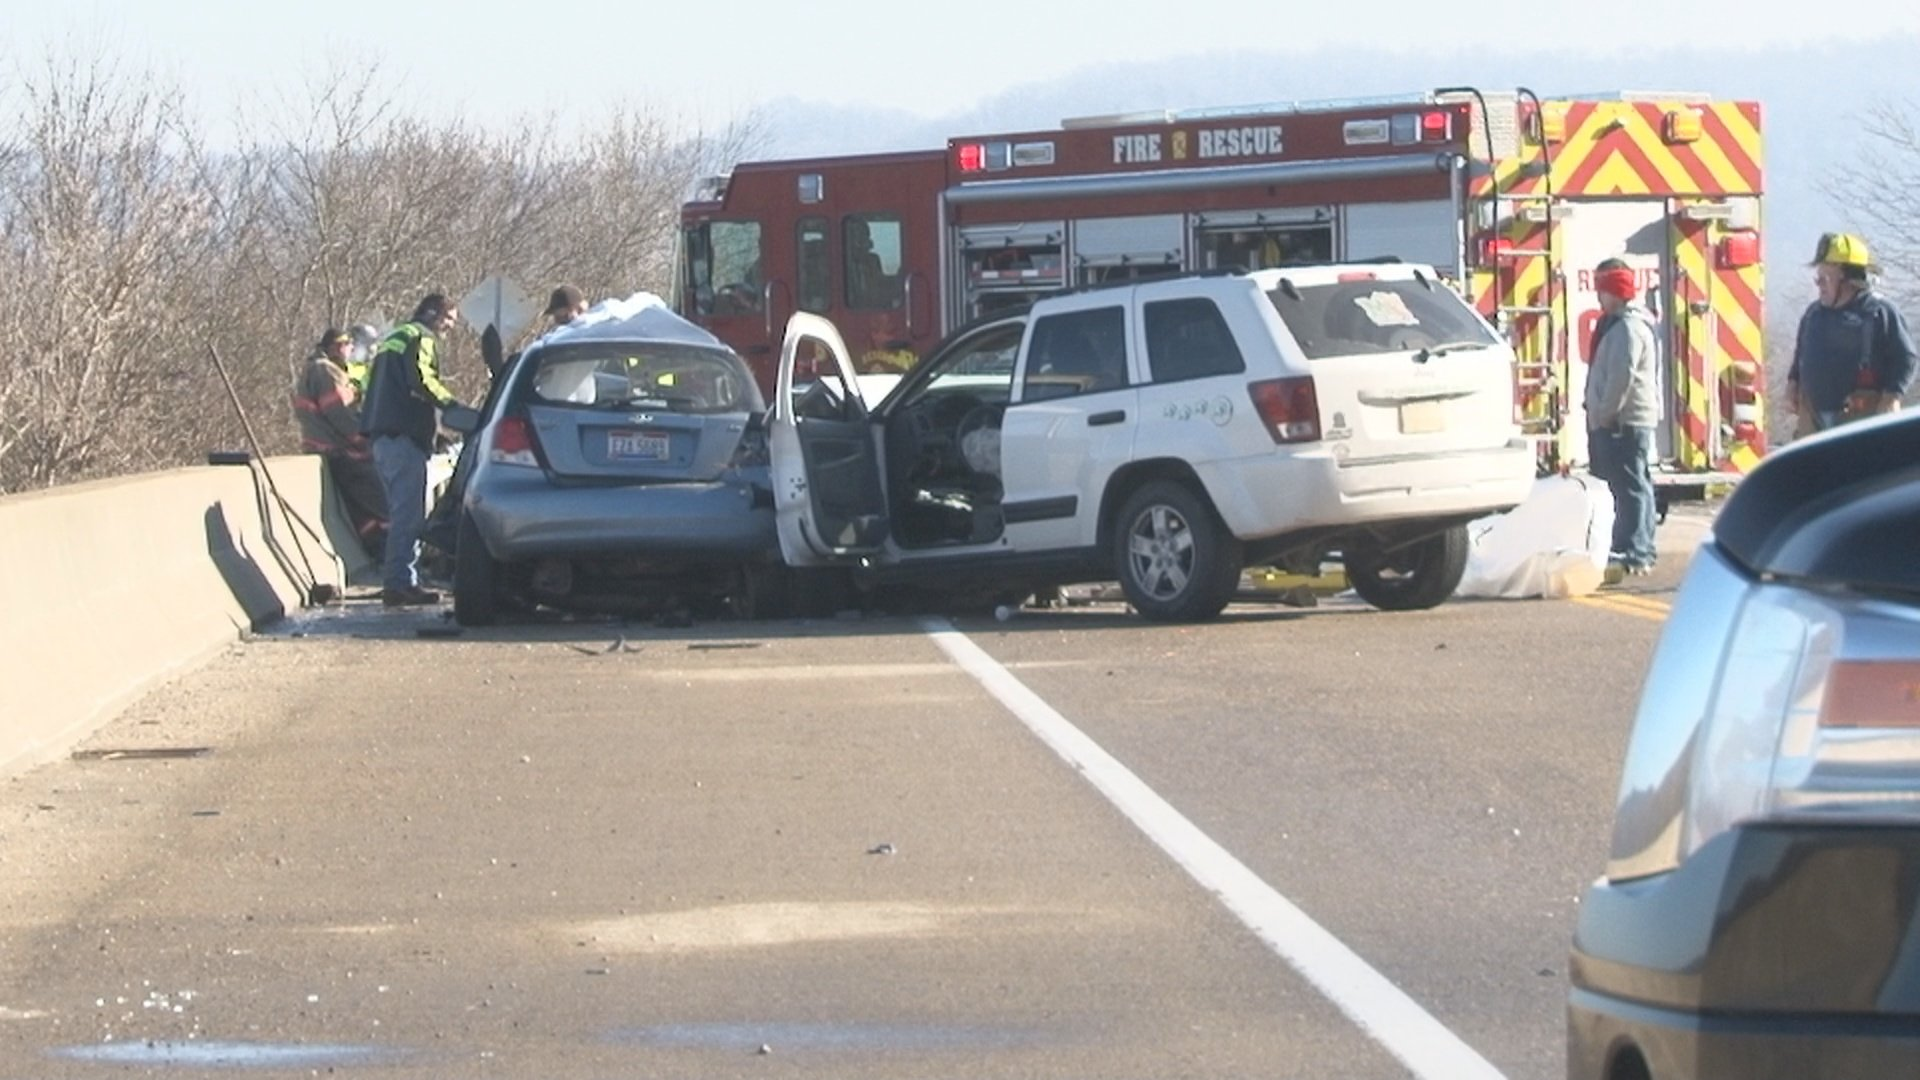 Rt 2 Fatal Crash Victims Names Released Wowk 13 Charleston Huntington Wv News Weather Sports